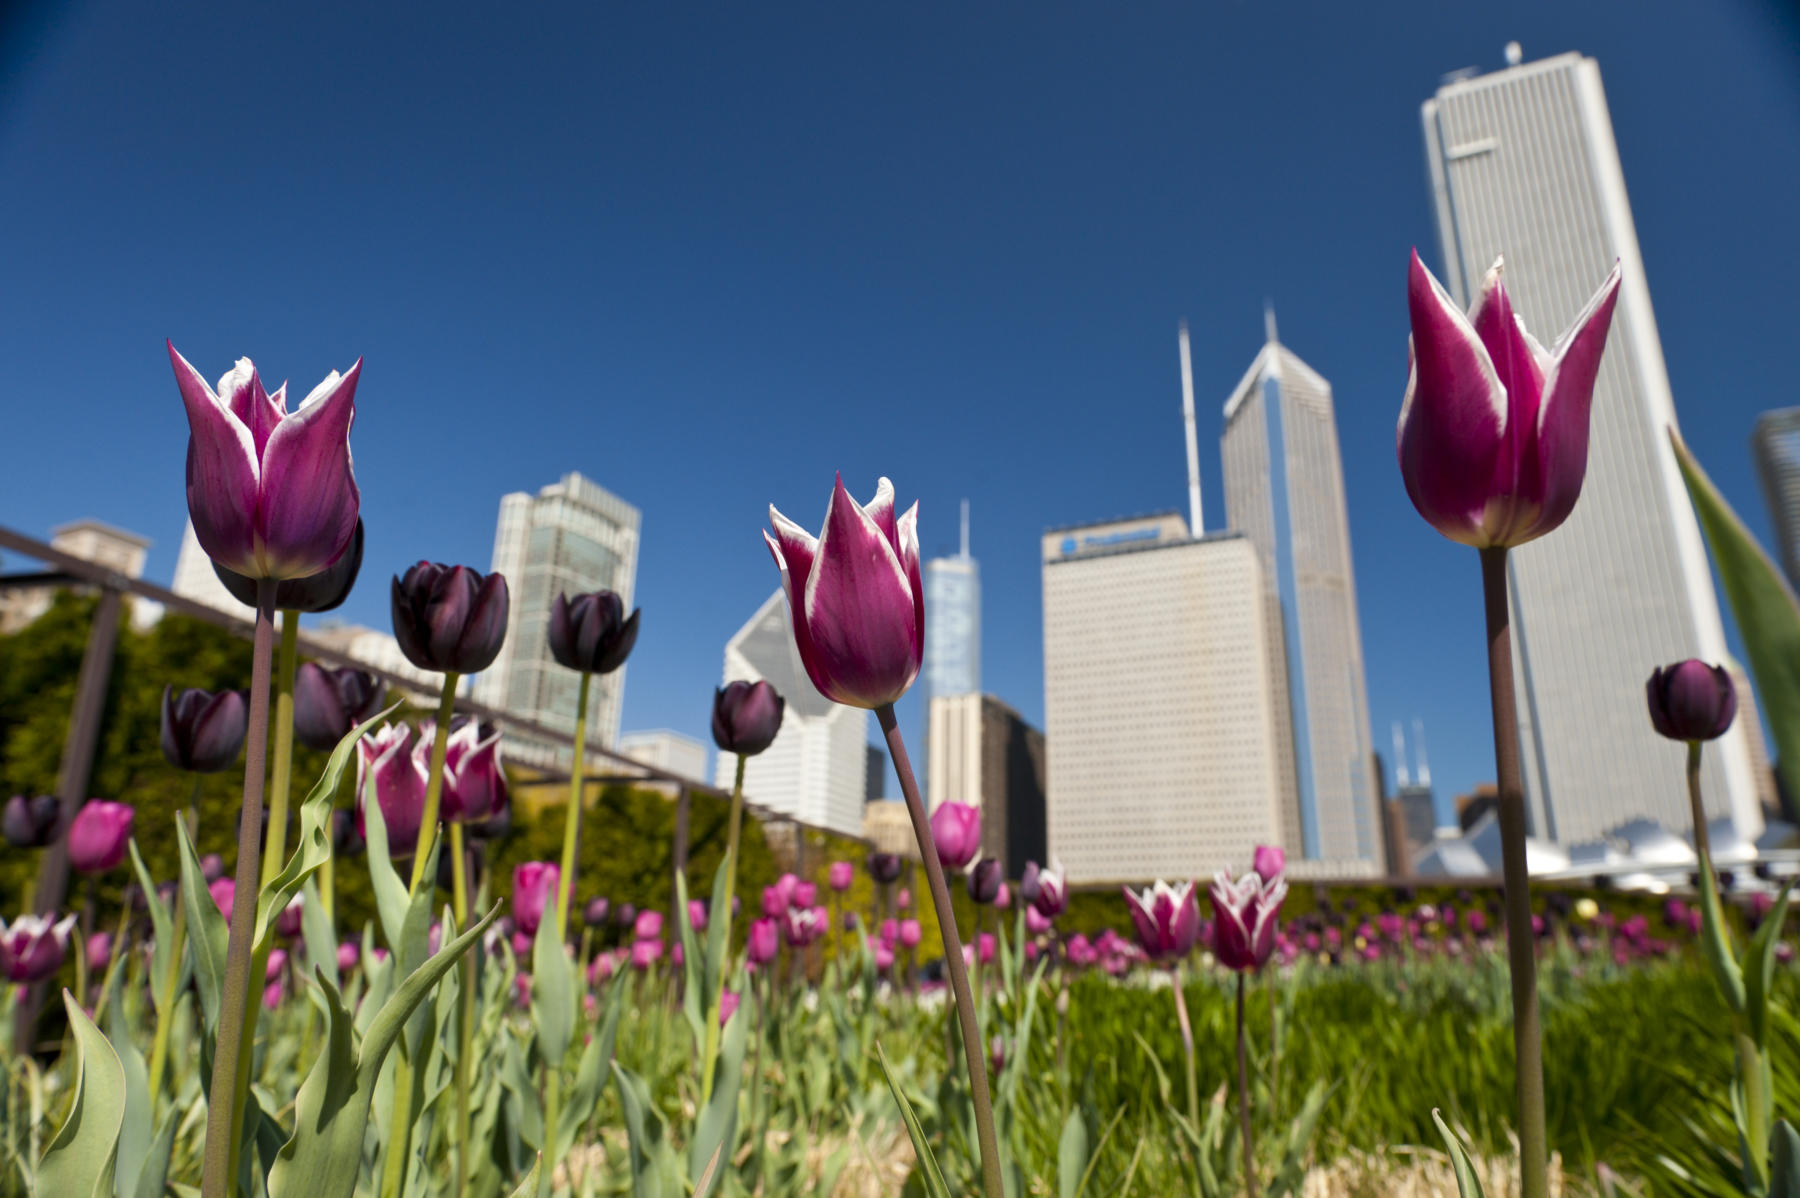 Chicago tulips during spring